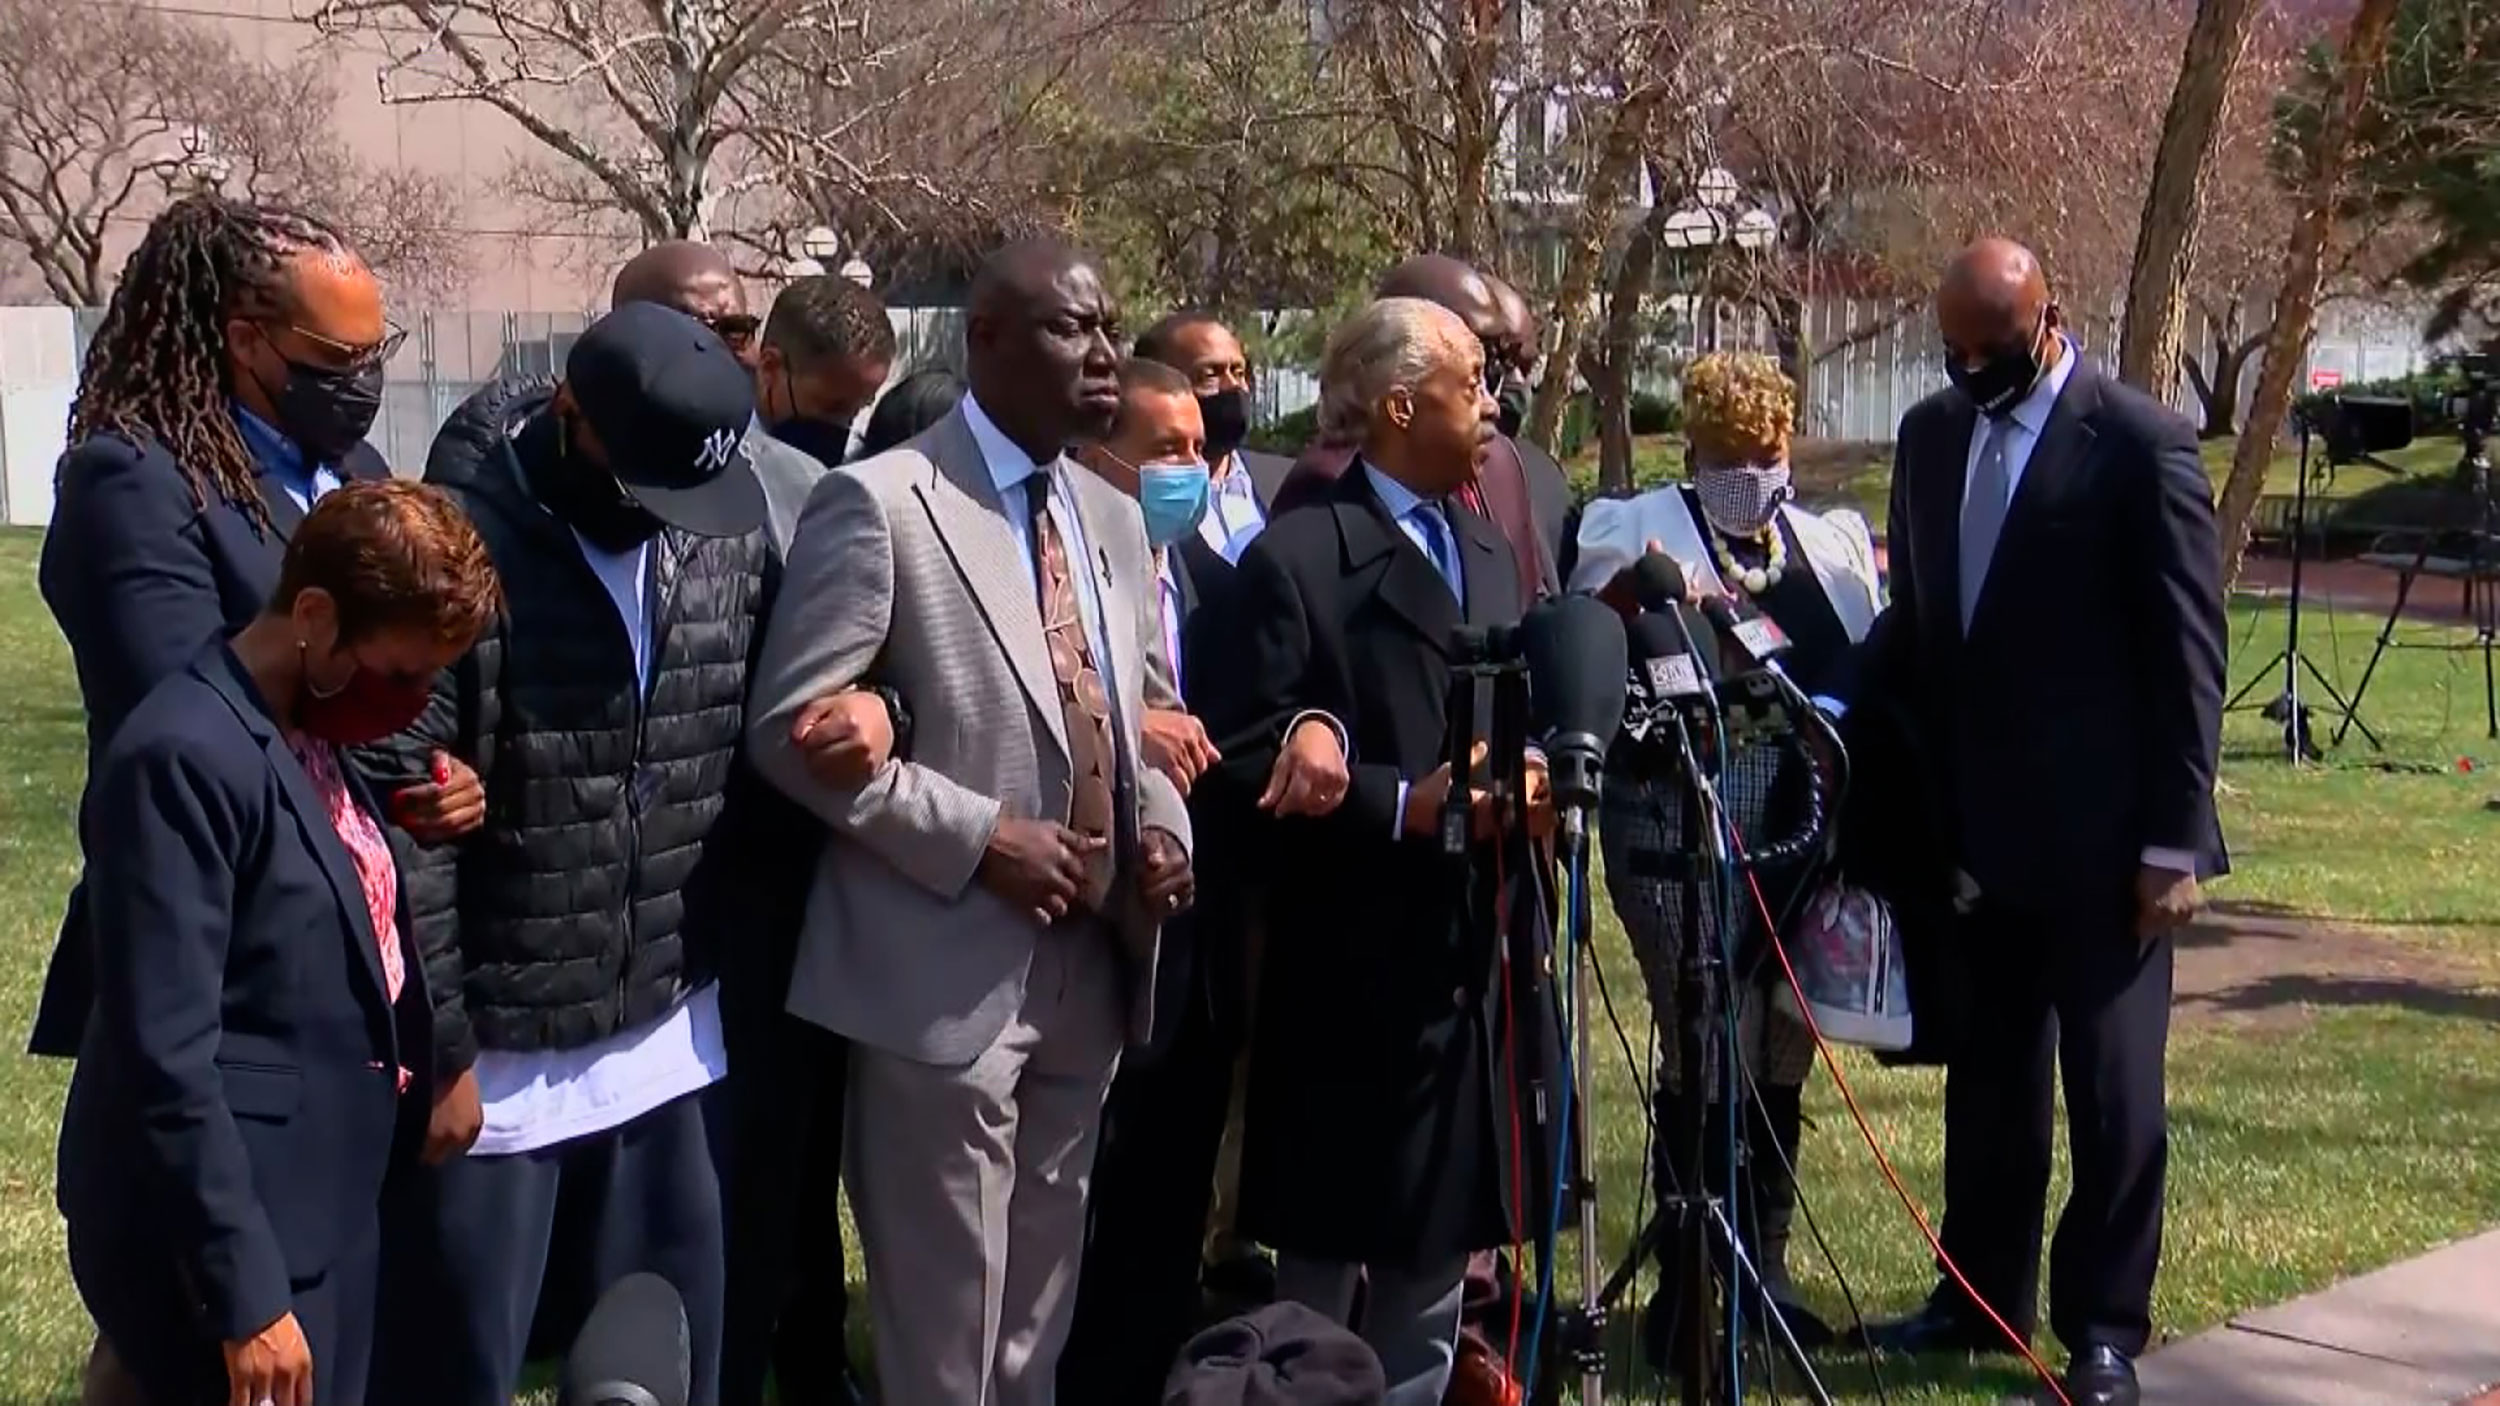 Rev. Al Sharpton leads a group prayer on Tuesday.